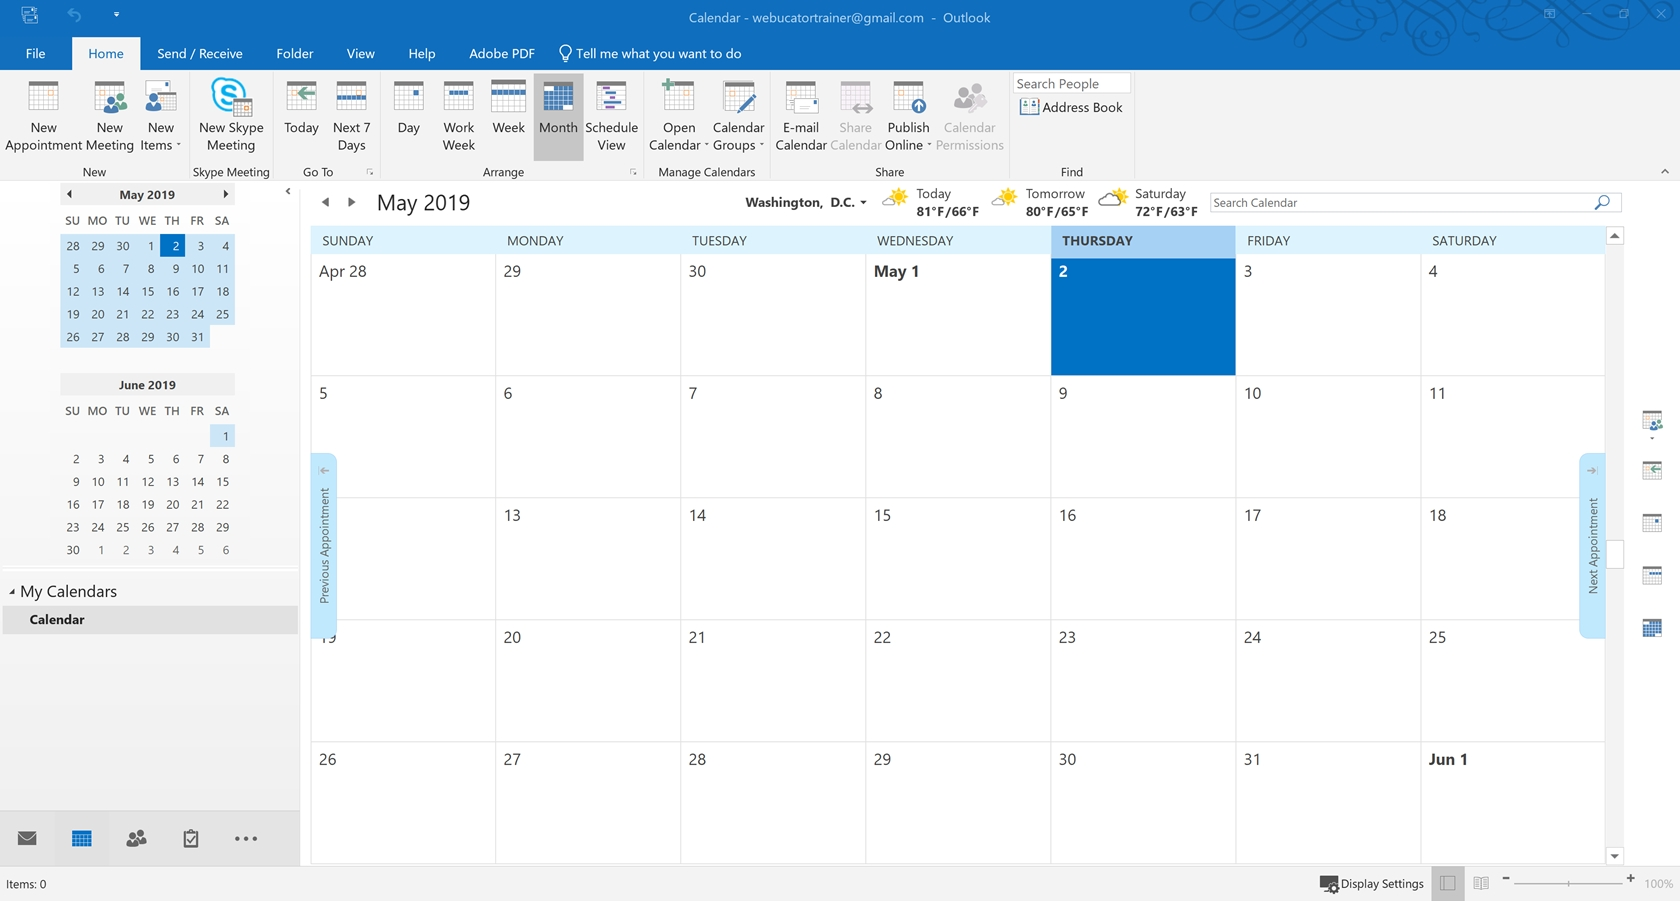 Tutorial: Working With The Calendar | Introduction To